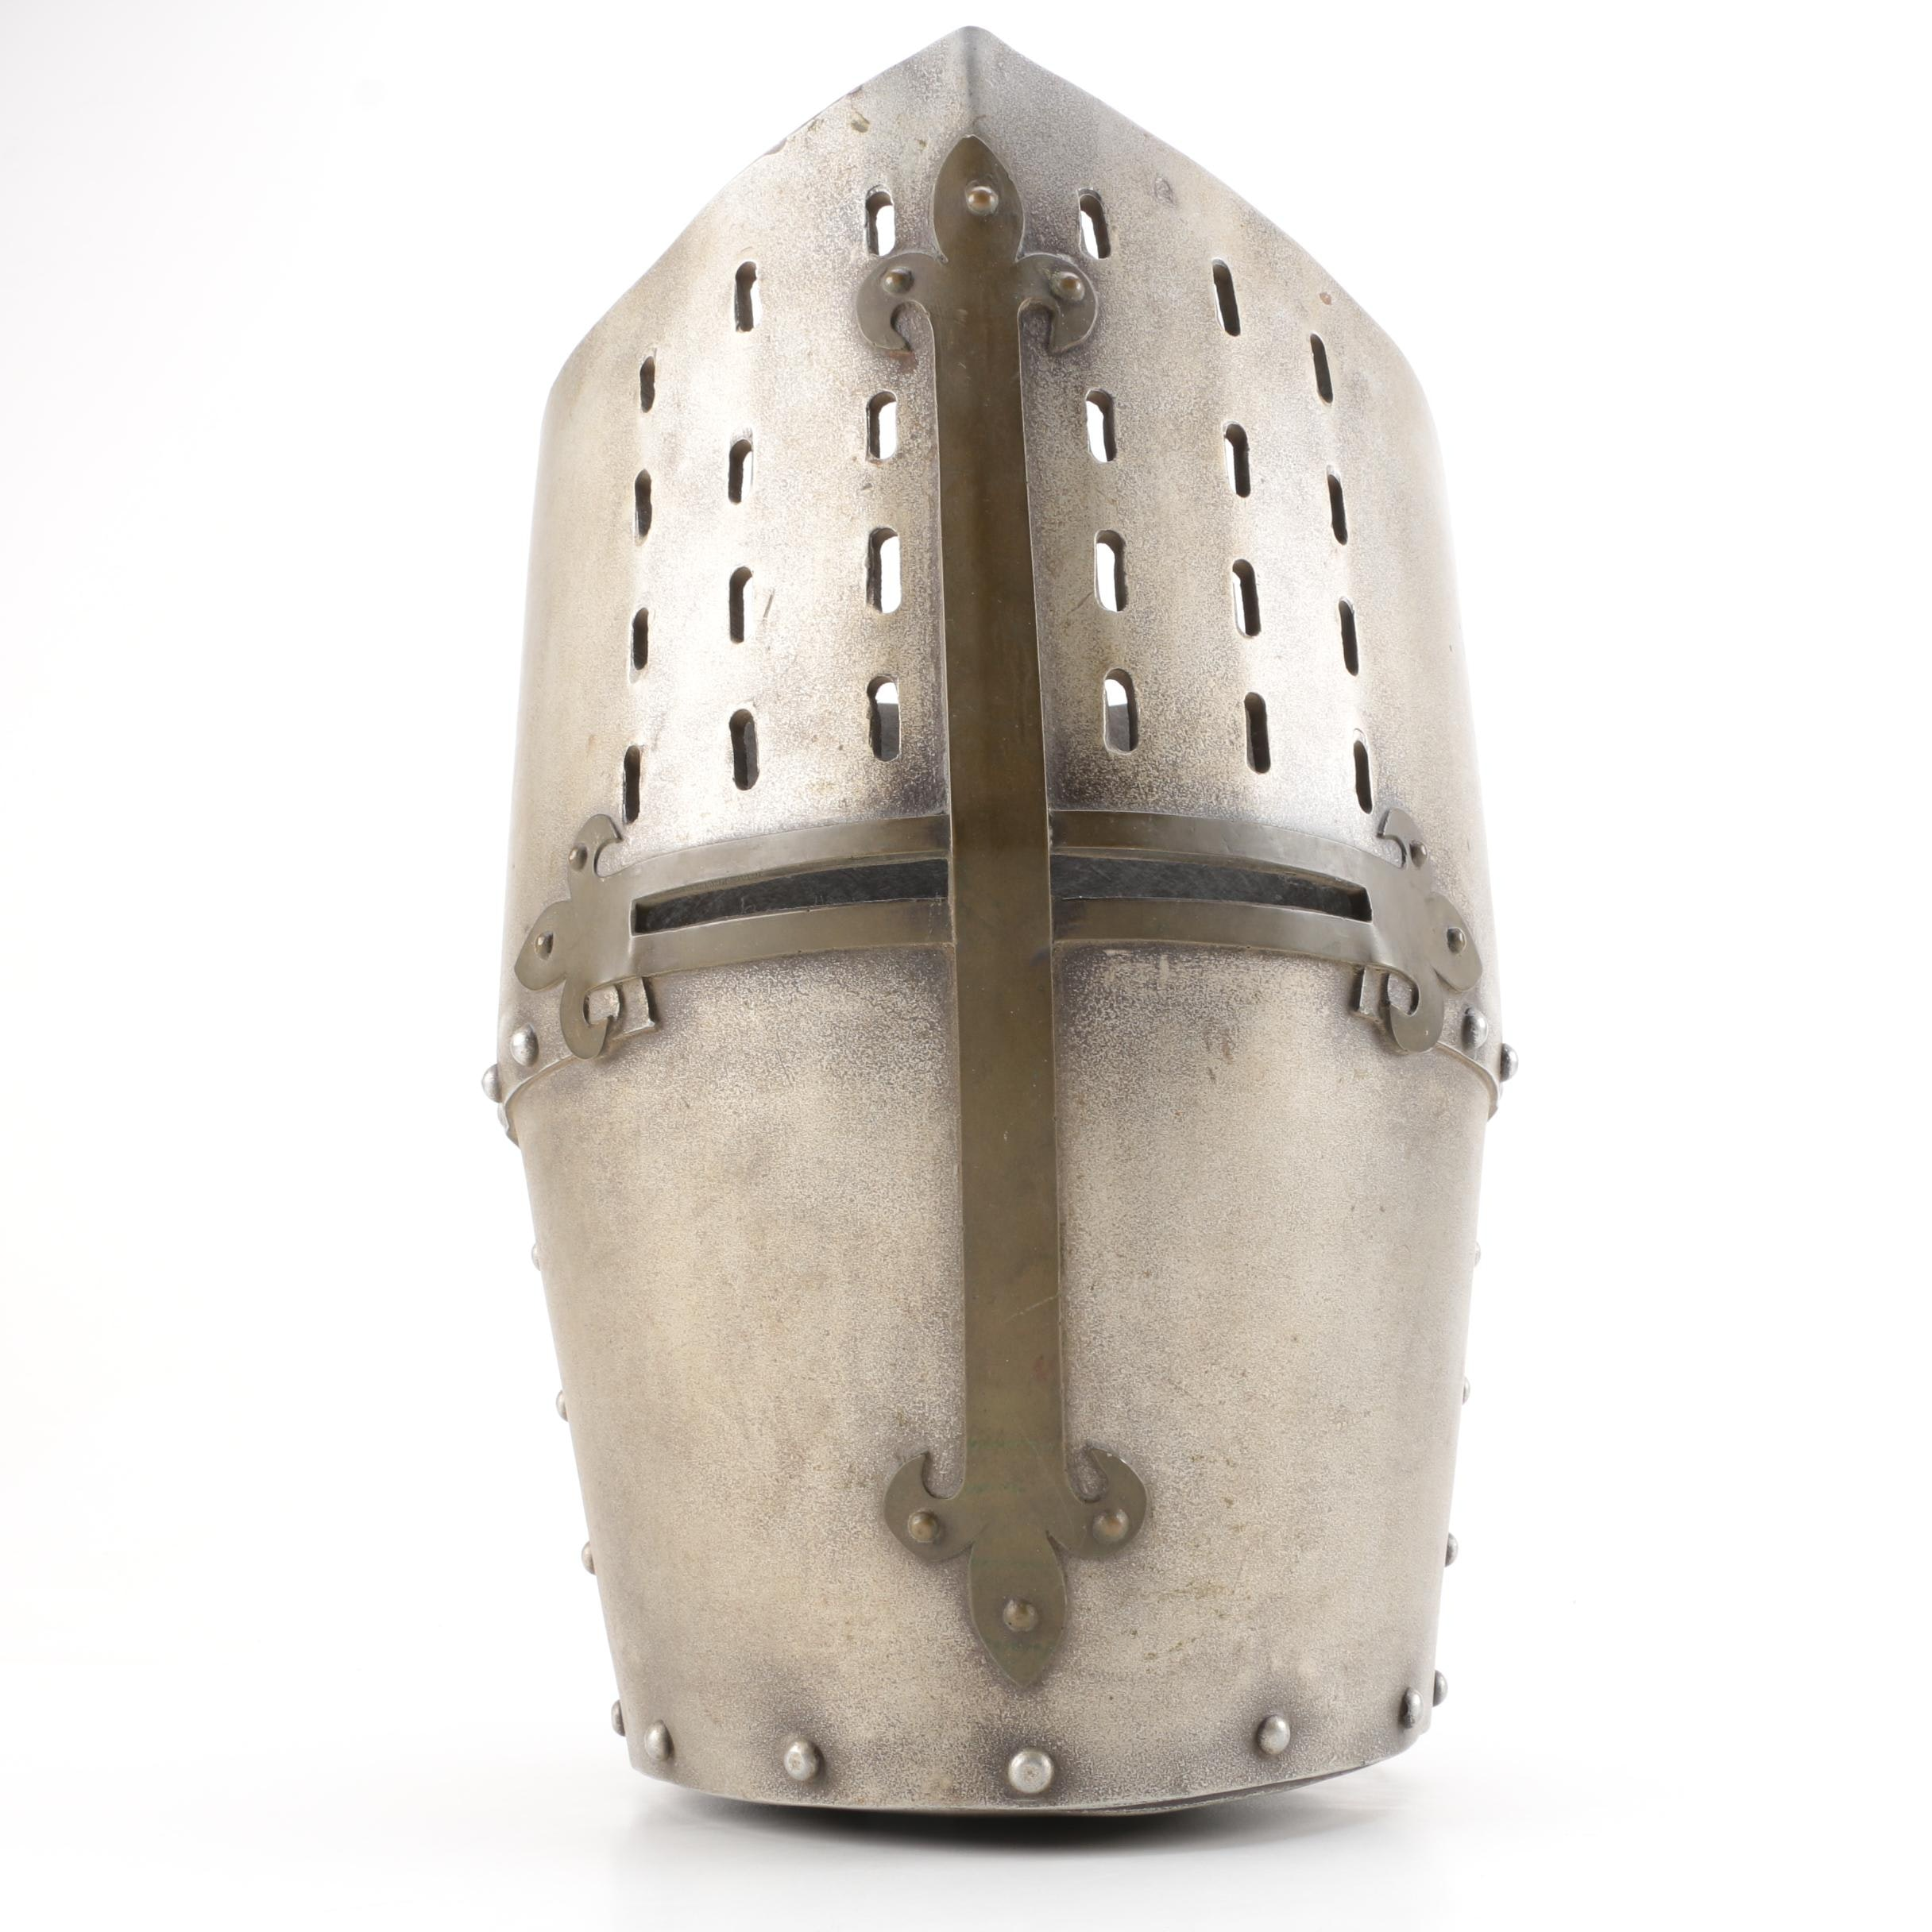 Reproduction Medieval Great Helm